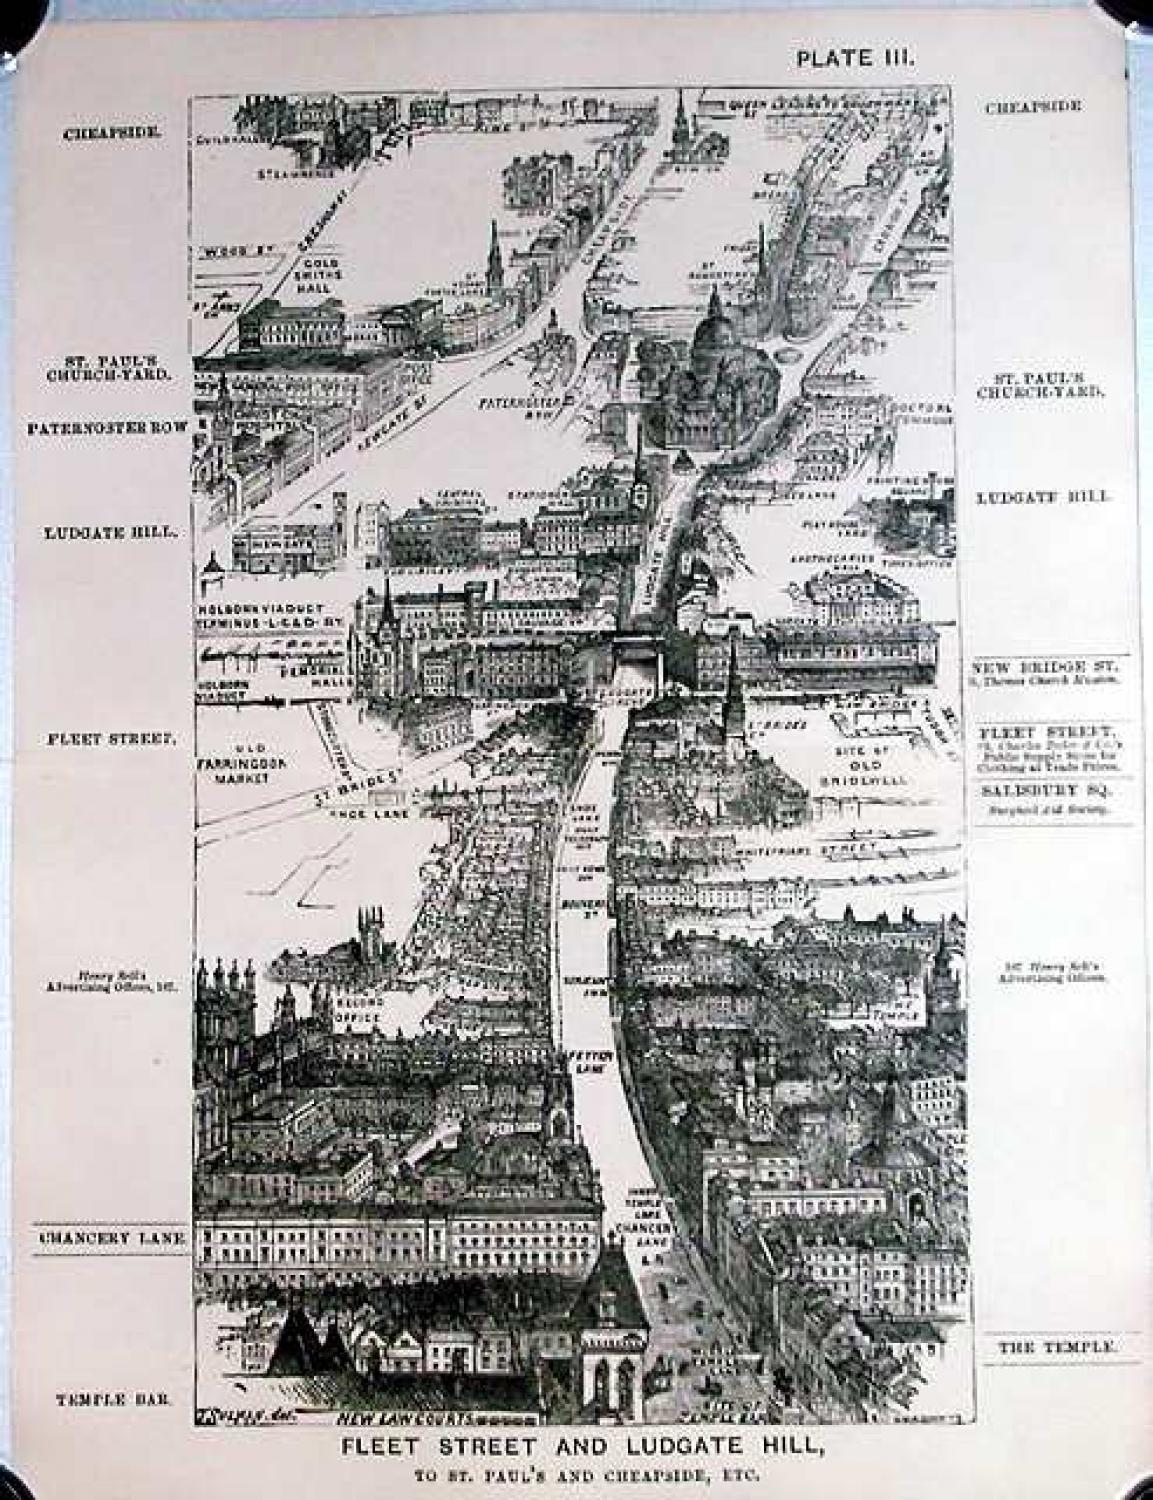 SOLD London in 1887, Plate III, Fleet Street and Ludgate Hill, to St. Paul's and Cheapside, etc.